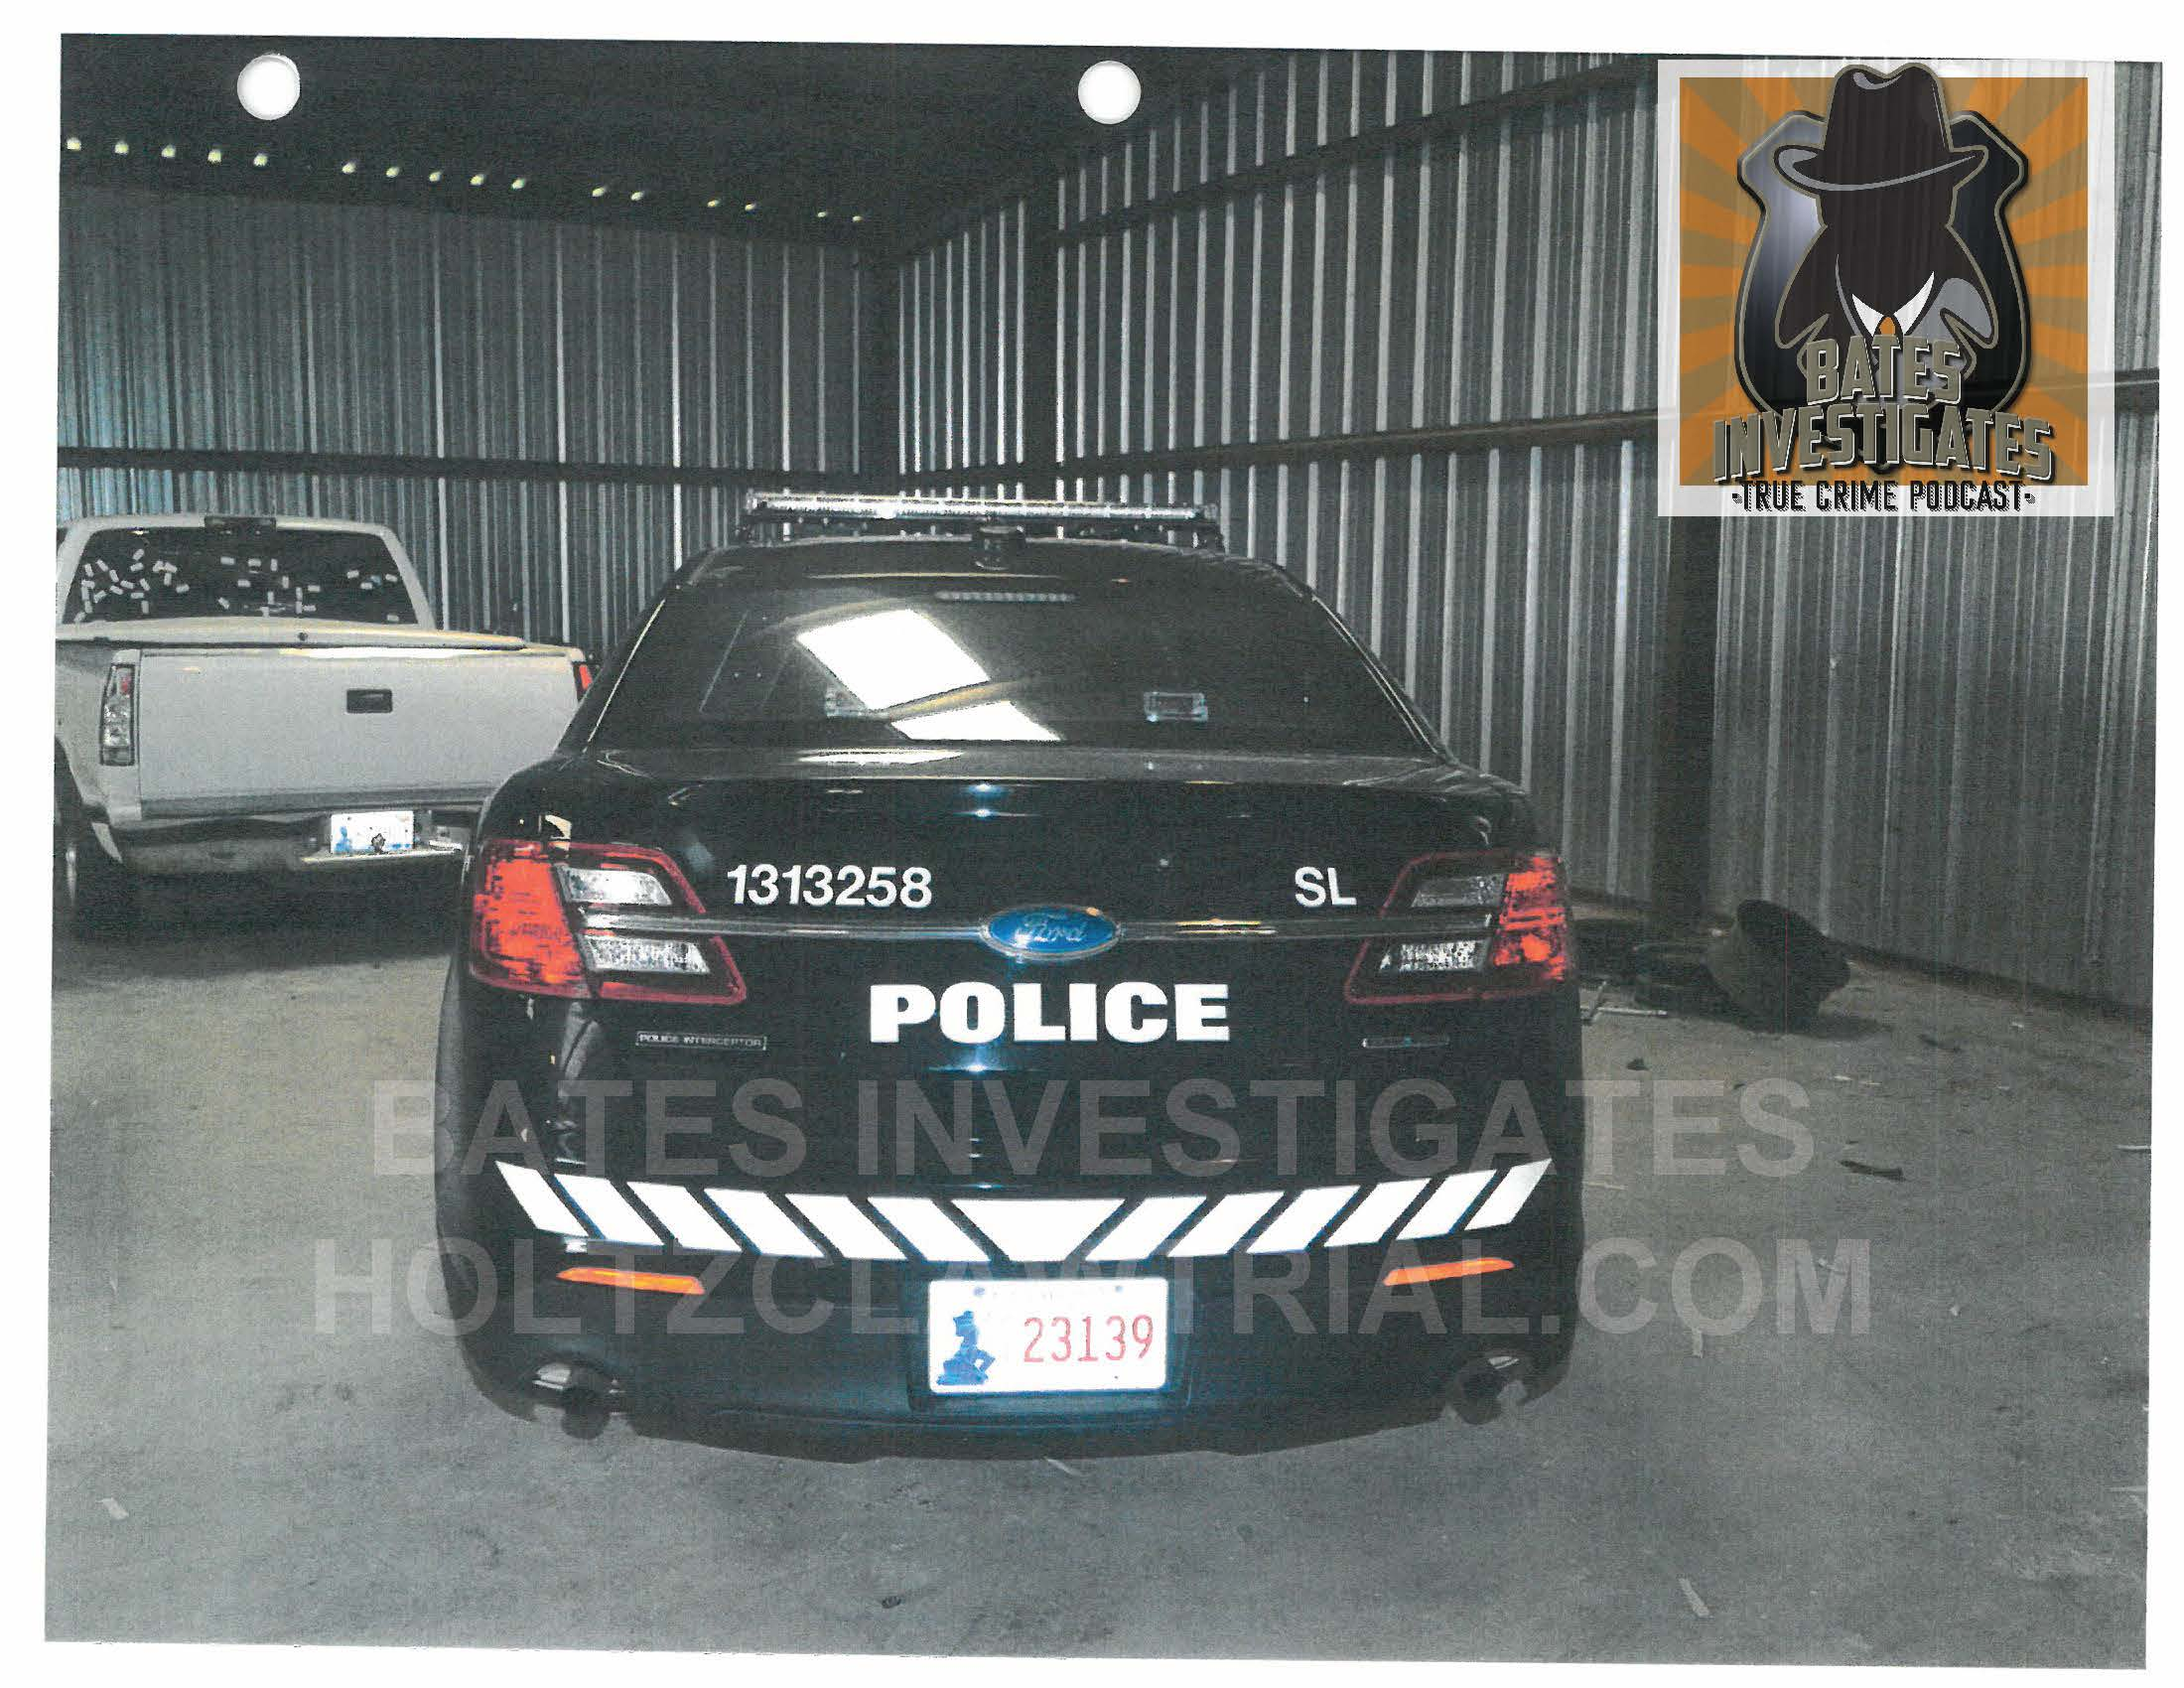 Holtzclaw Daniel - OCPD Patrol Car Photos Watermarked_Page_09.jpg